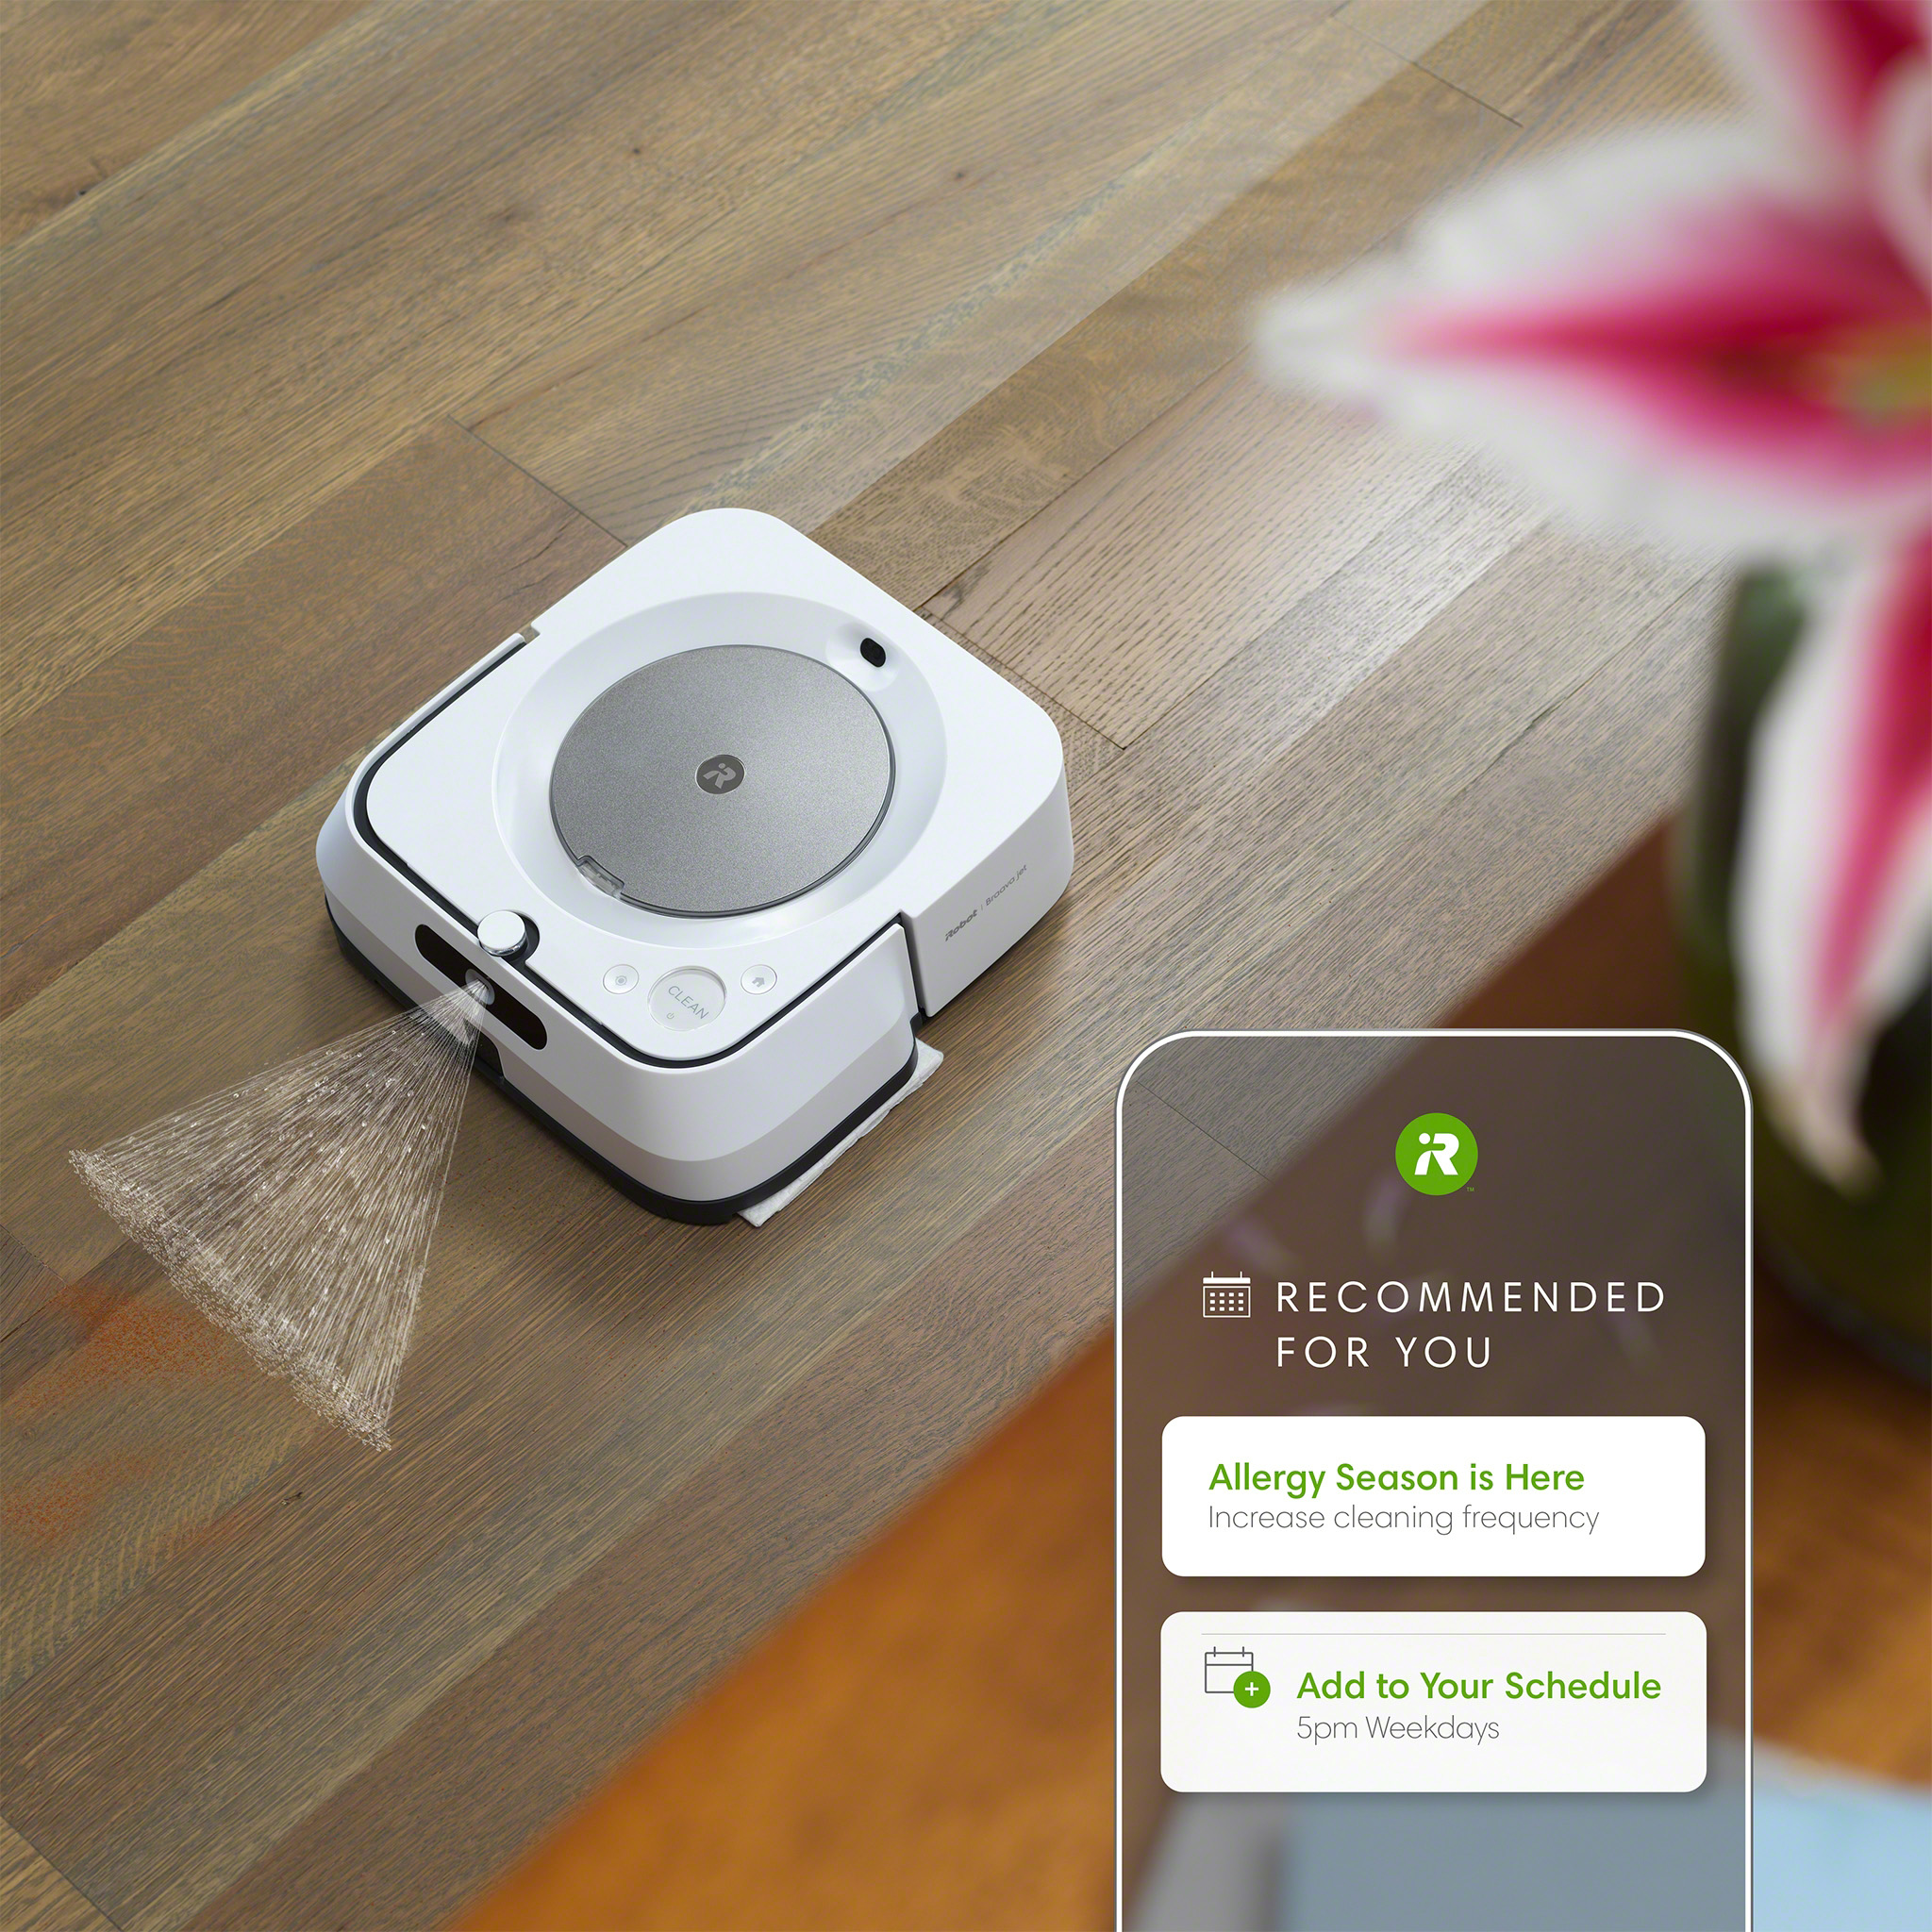 The new iRobot Home App can make personalized cleaning suggestions for when your home may need more frequent cleaning, such as pet-shedding or allergy seasons.